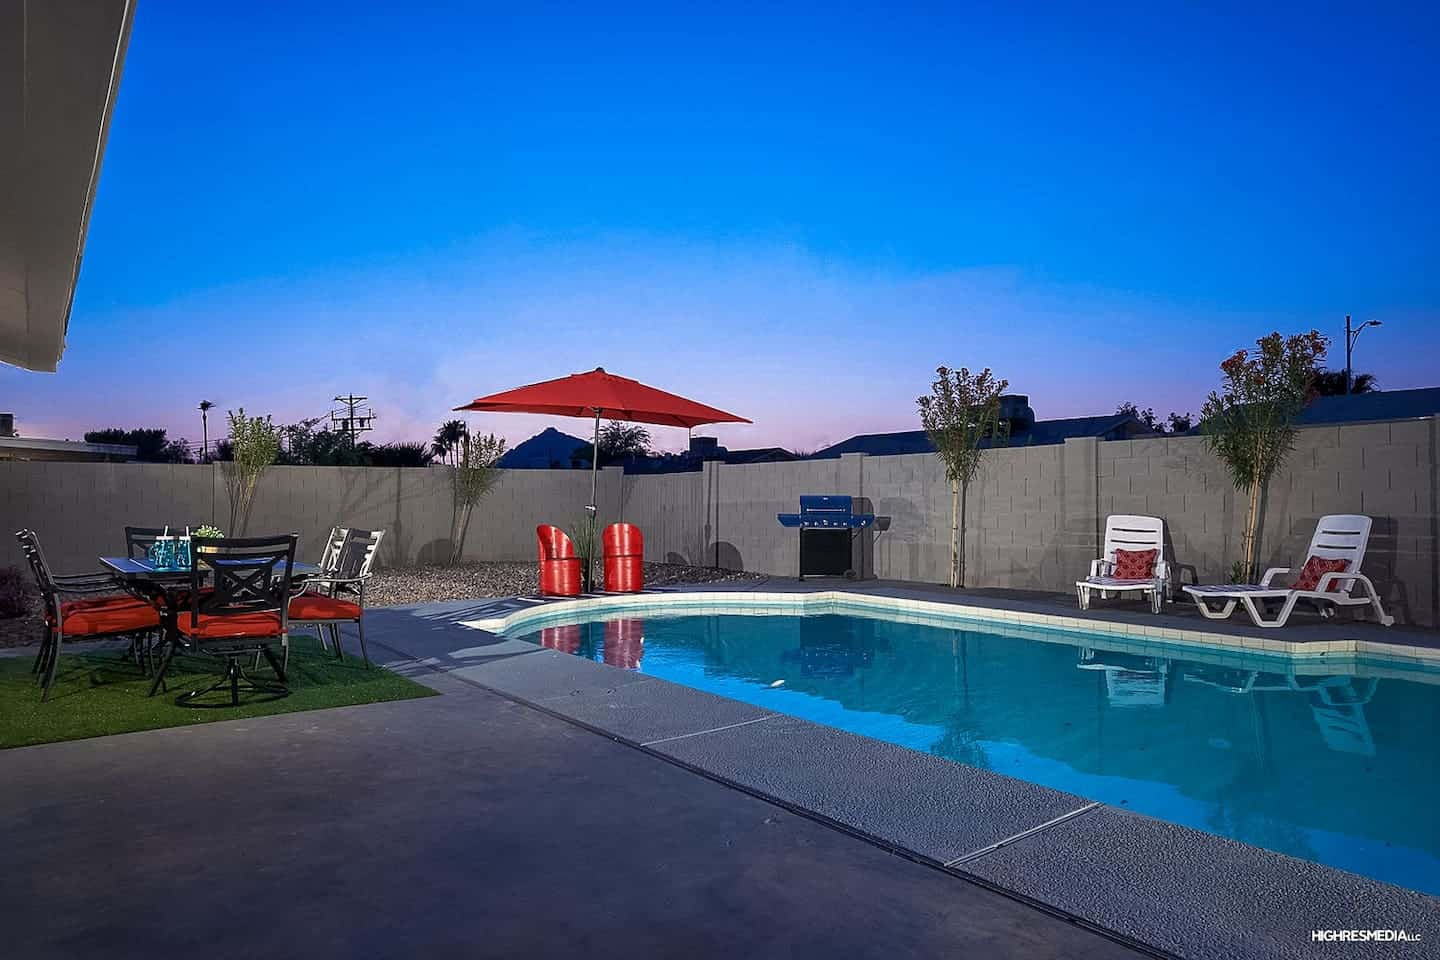 Image of Airbnb rental in Scottsdale Arizona